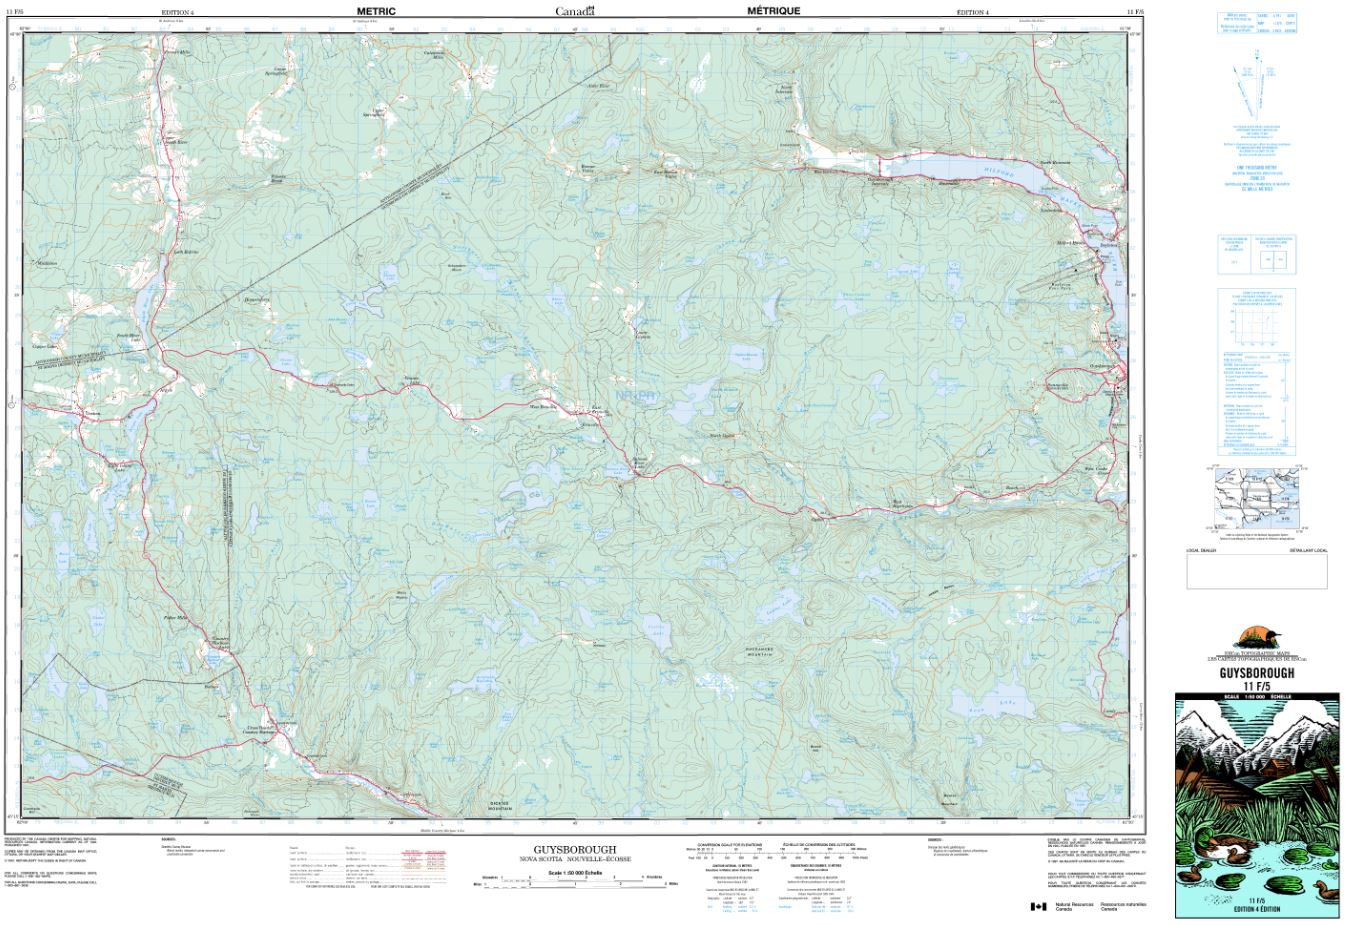 11F/05 Guysborough Topographic Map Nova Scotia